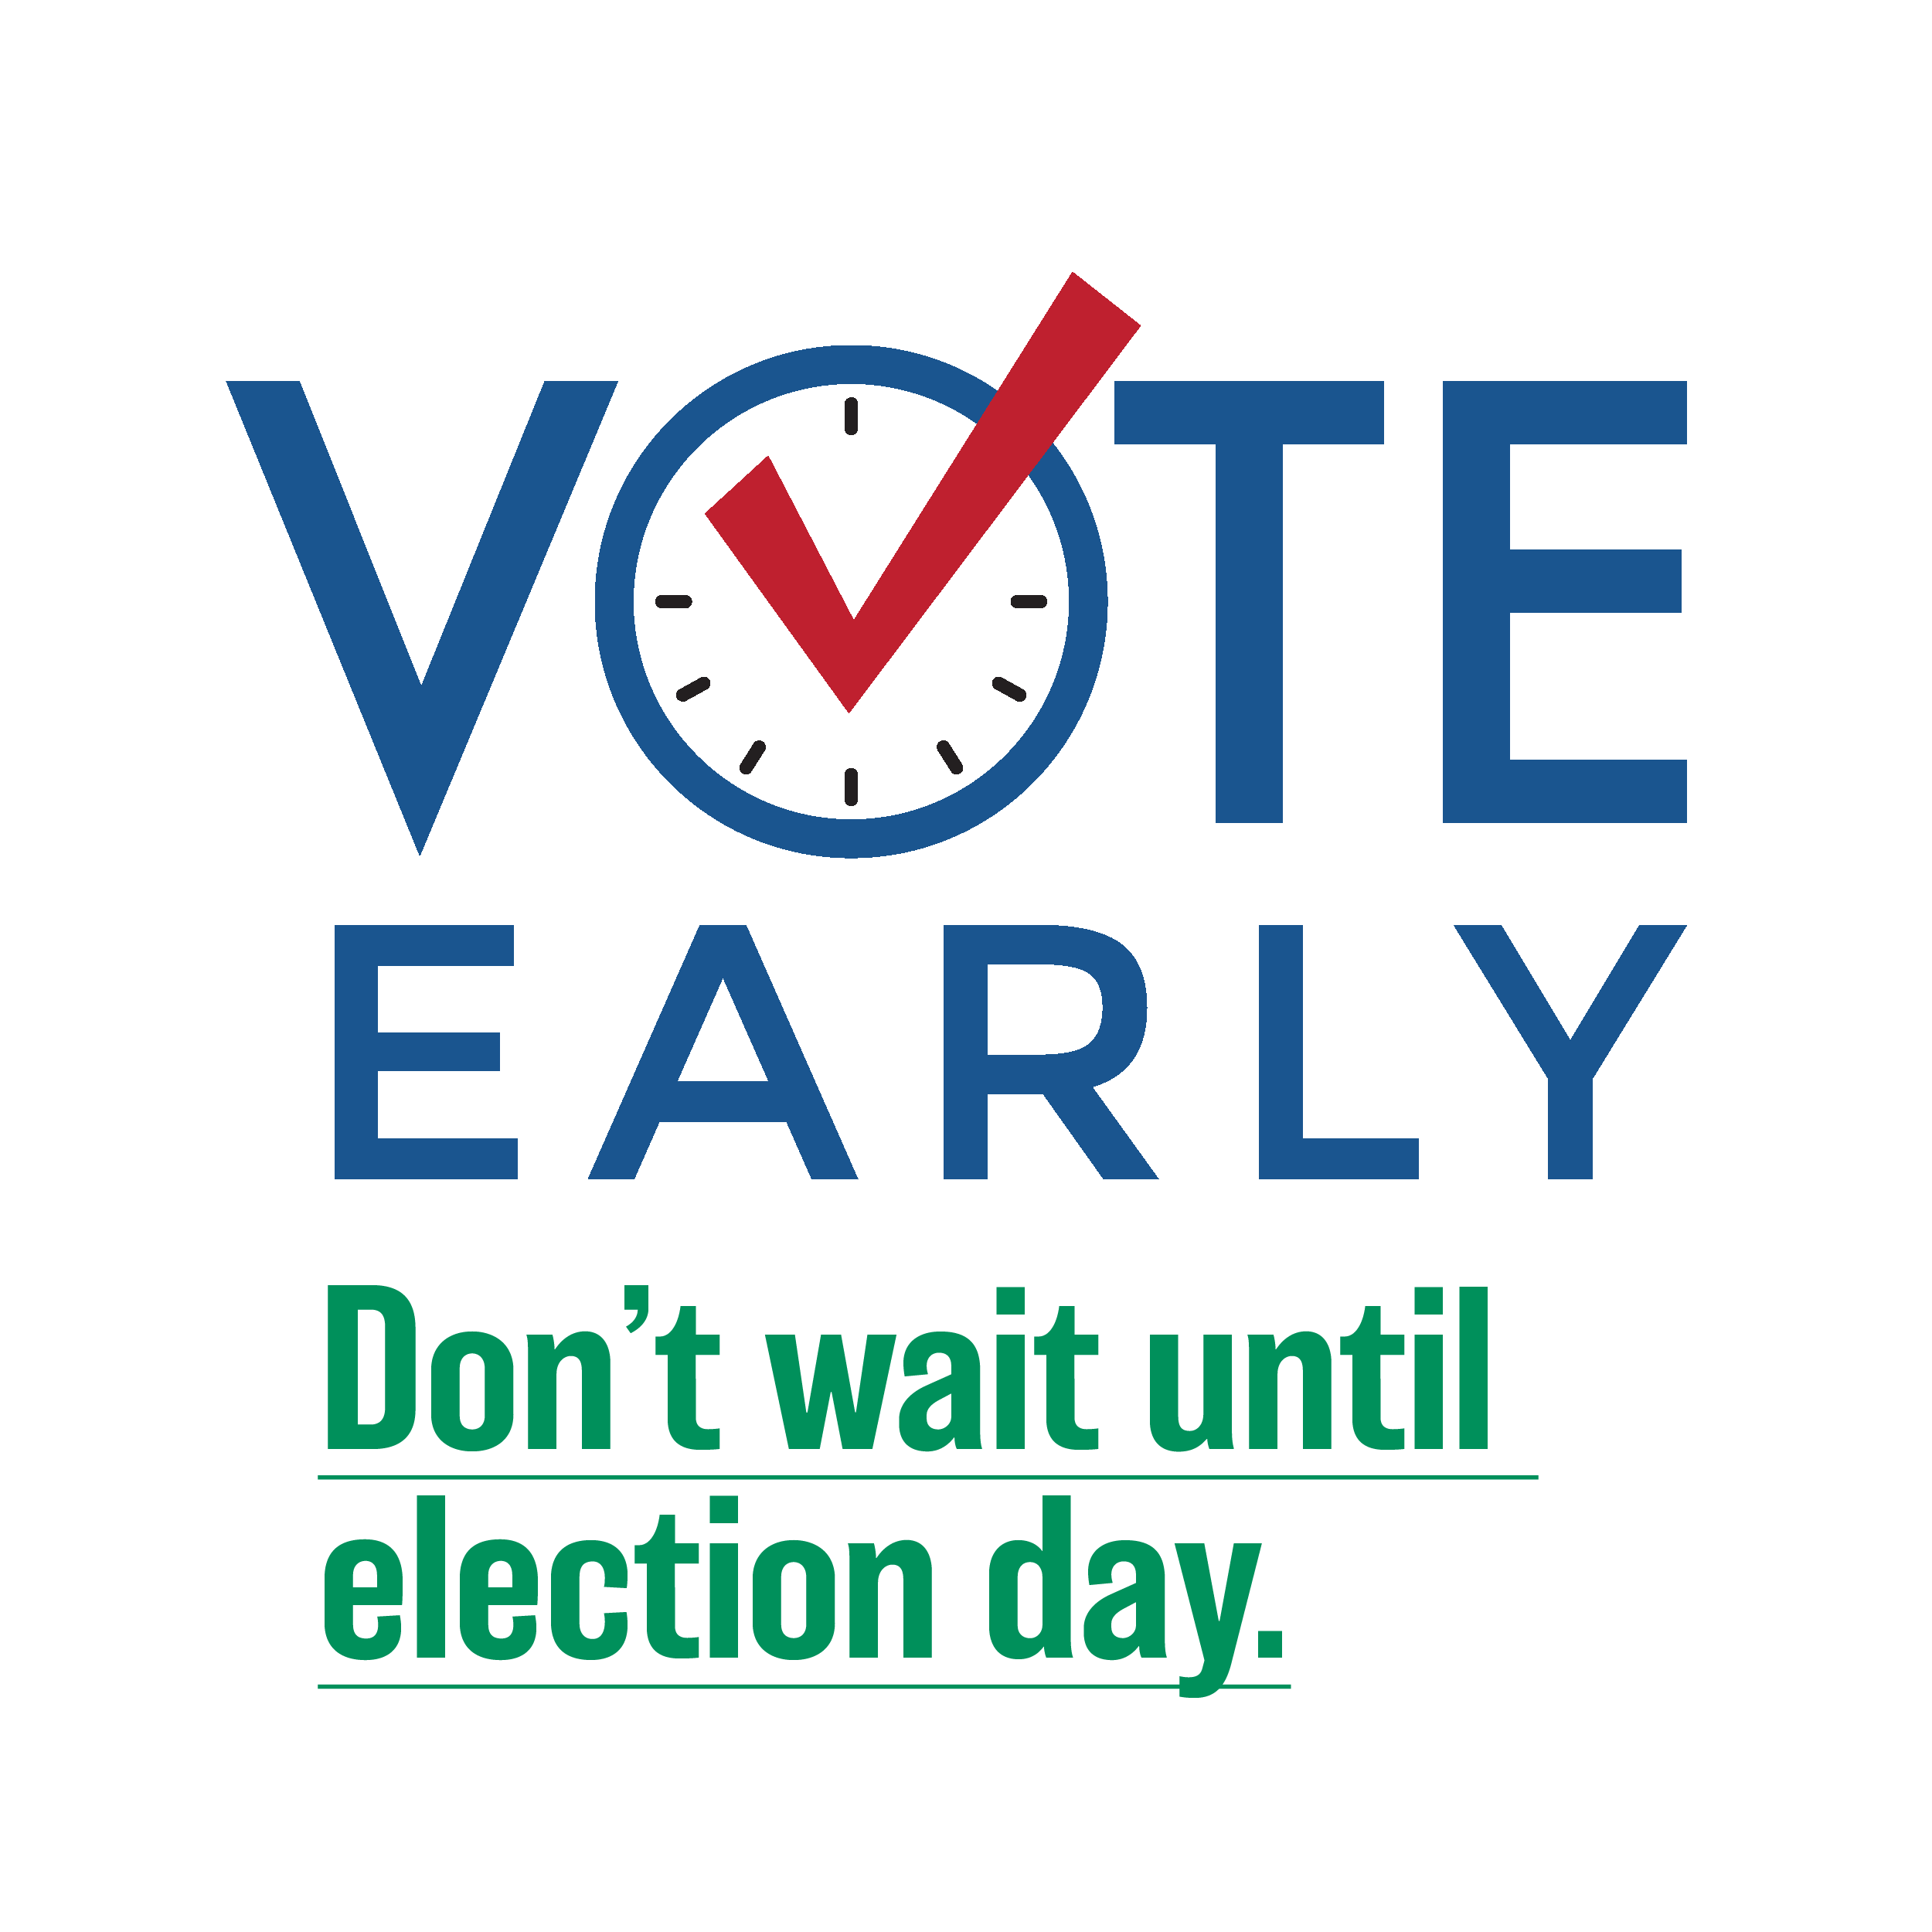 Vote Early. Don't wait until election day